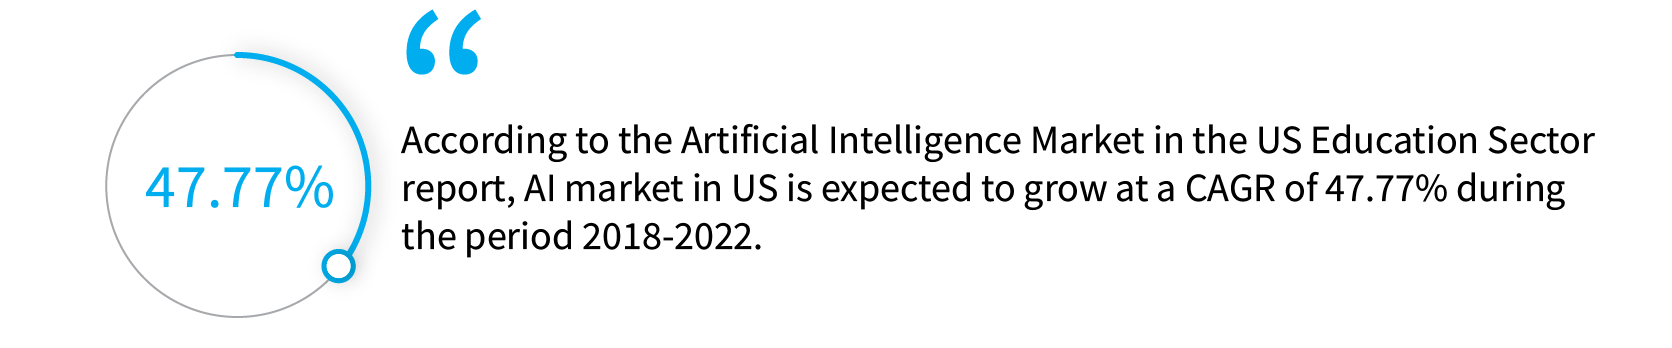 ARTIFICIAL intelligence REPORT FACTS